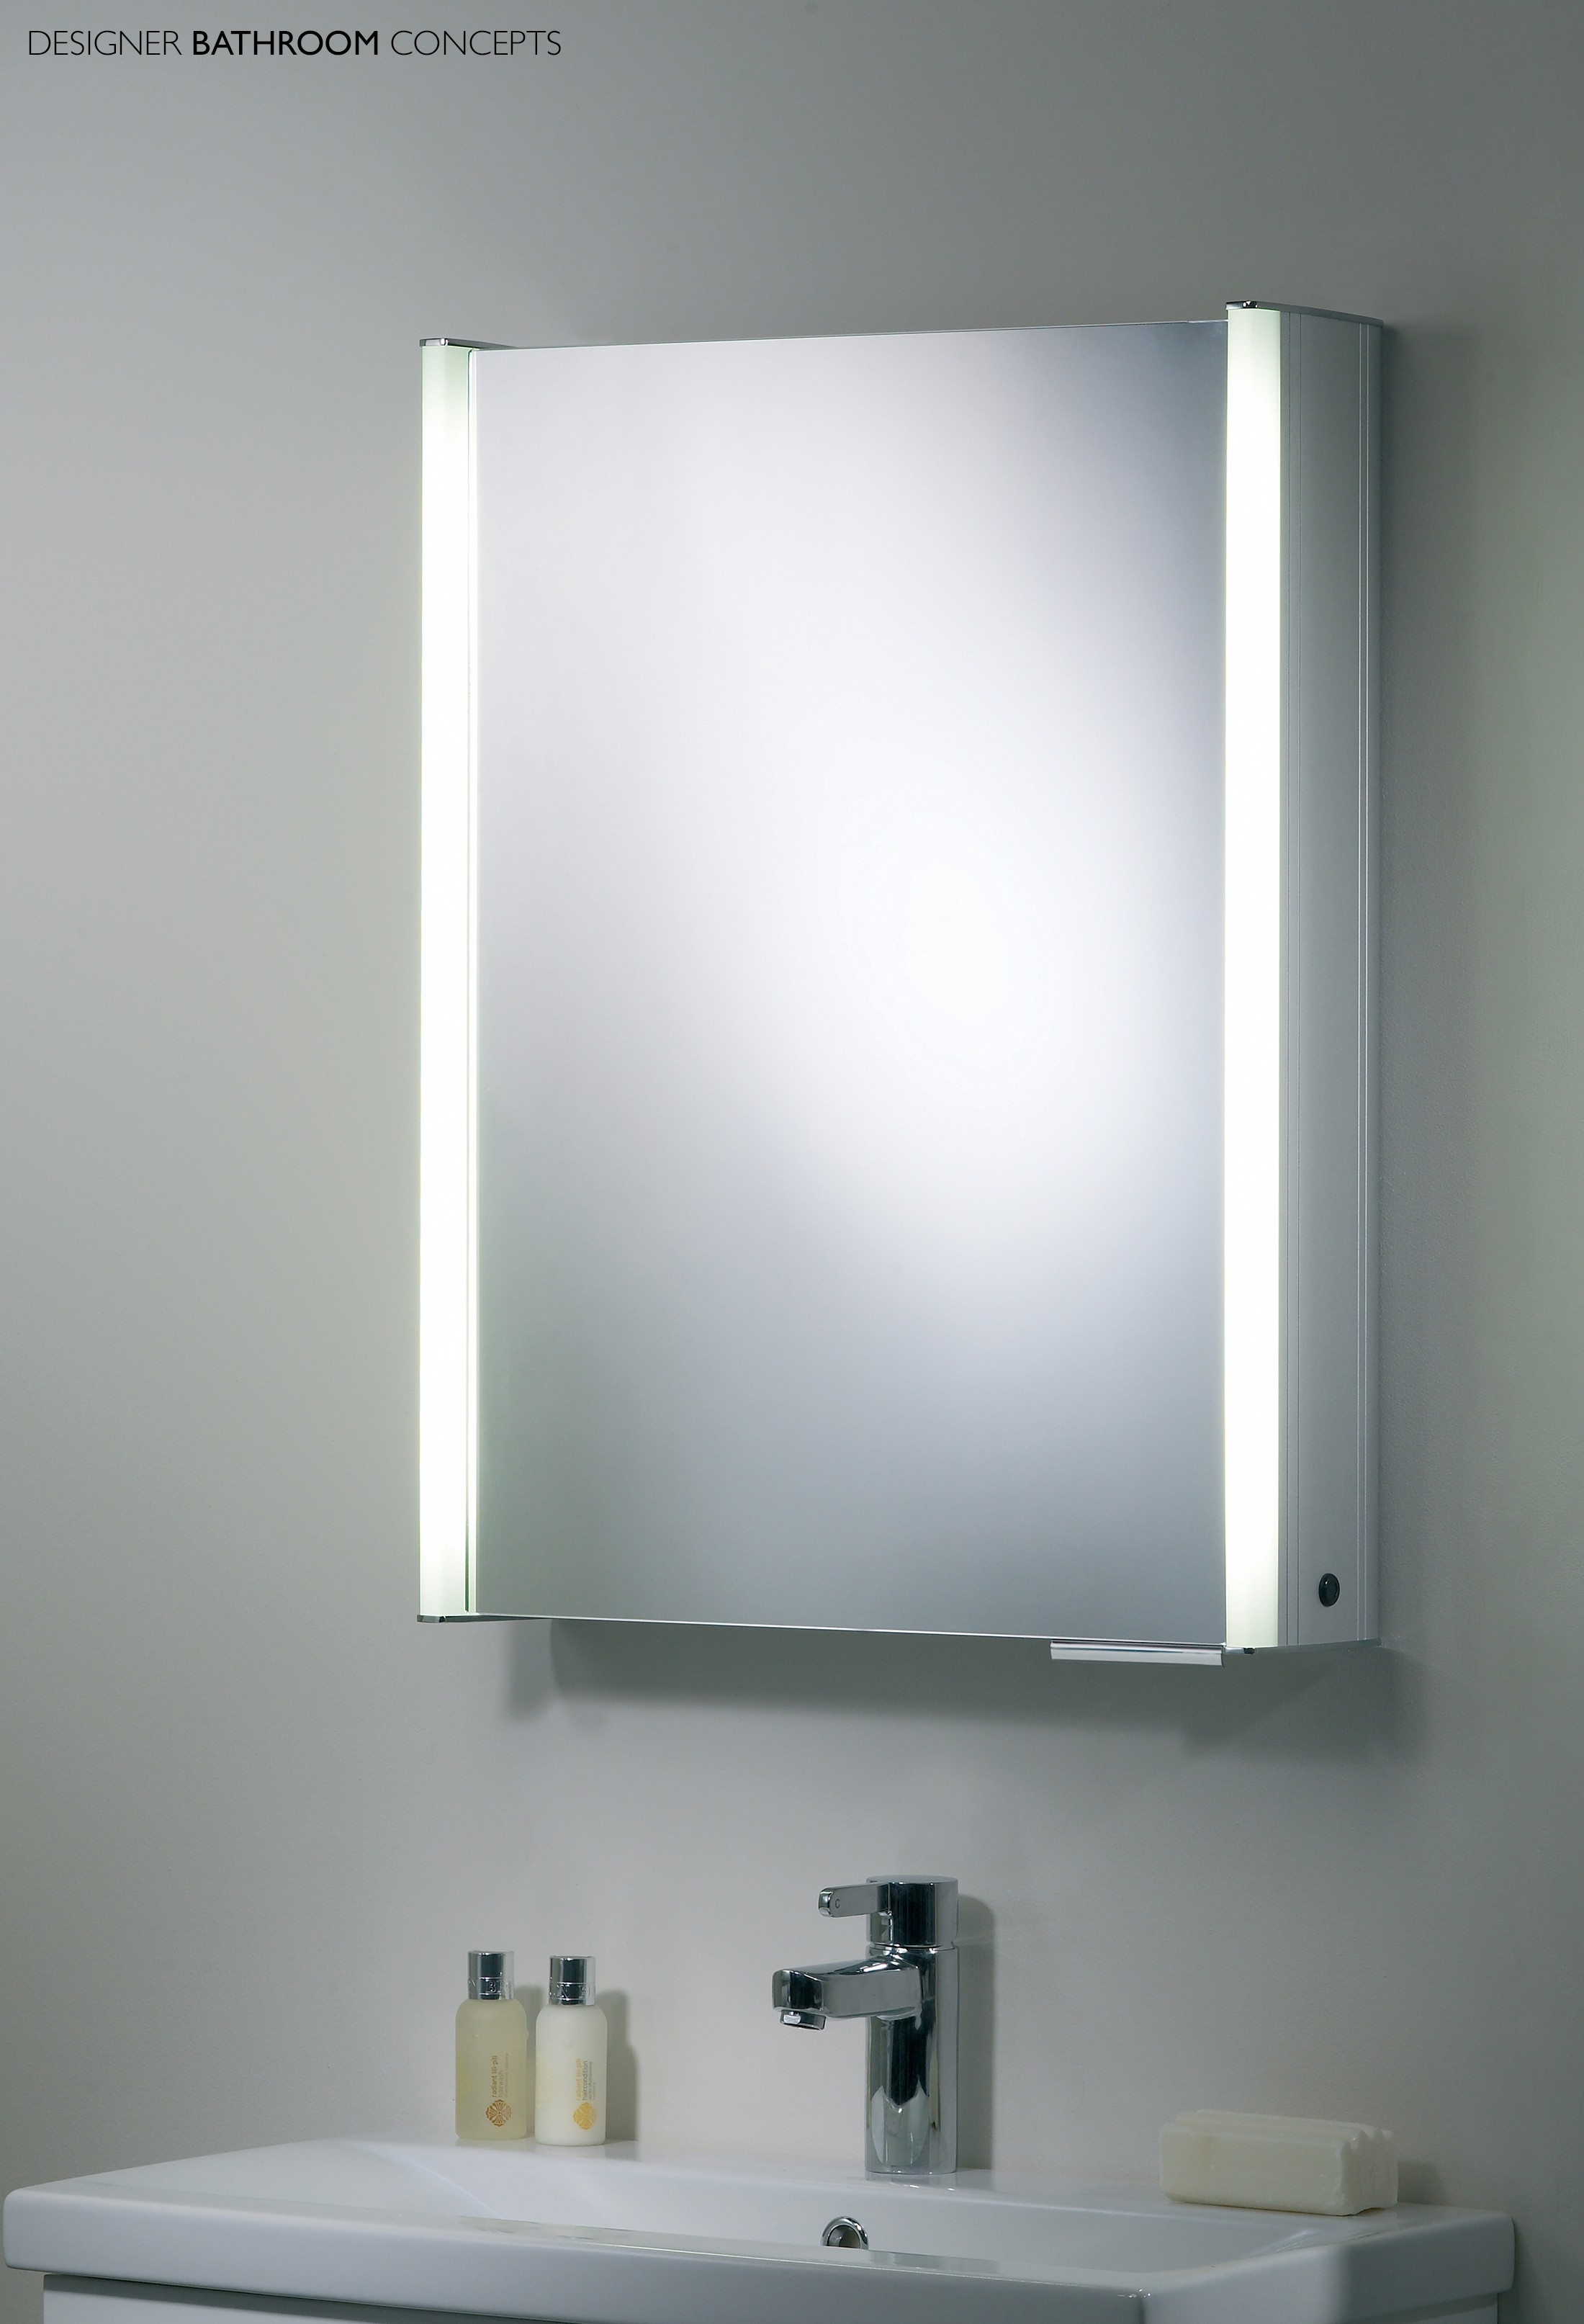 B And Q Bathroom Mirror Cabinets